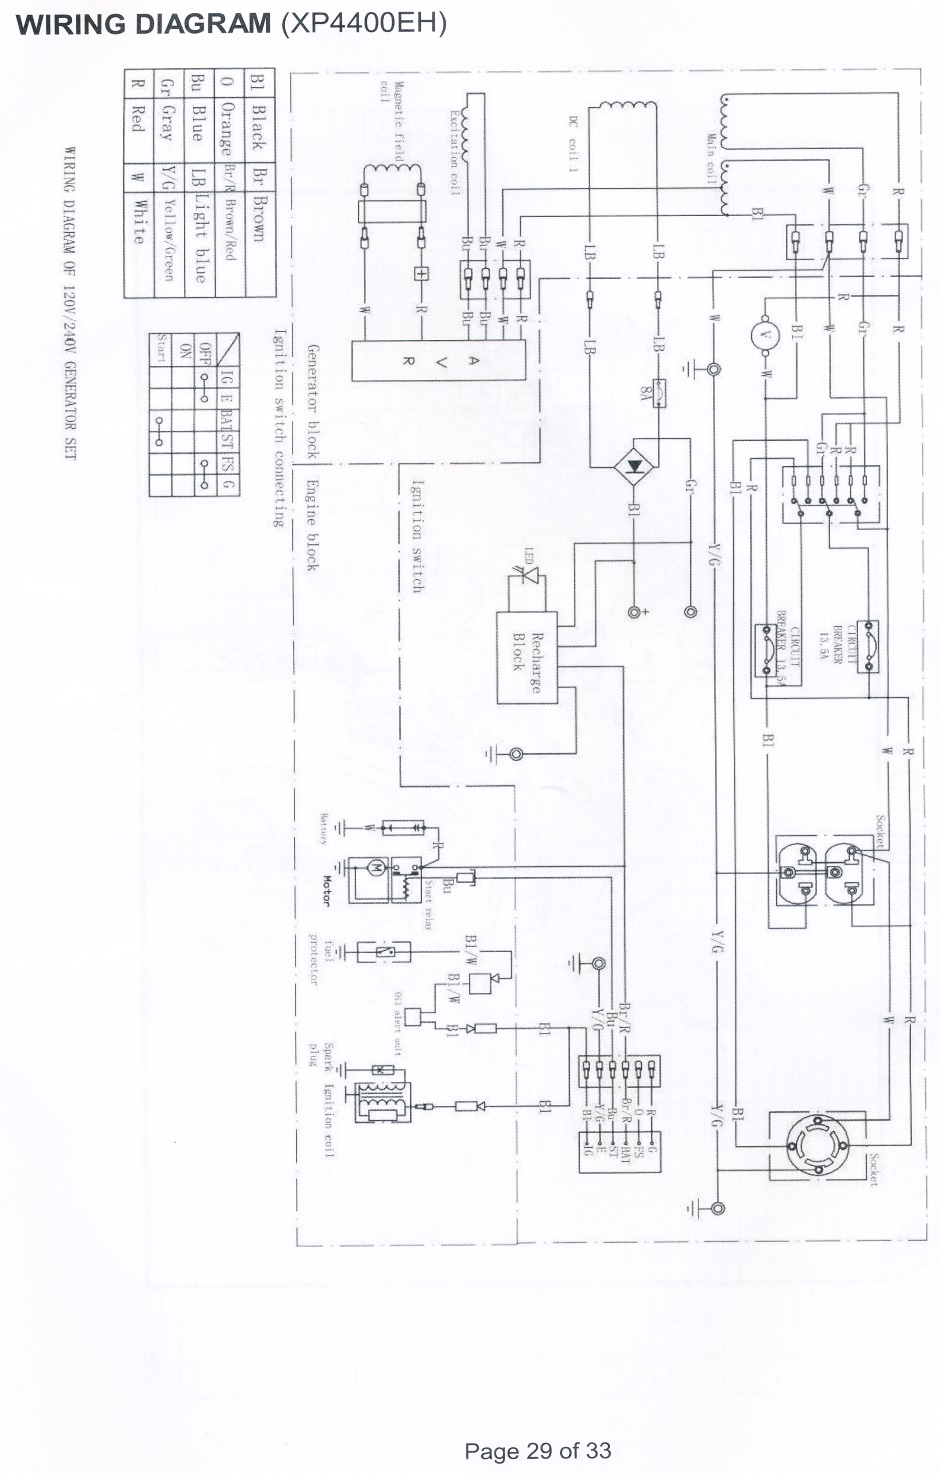 Lma A Wiring Diagram Auto Electrical Wiring Diagram